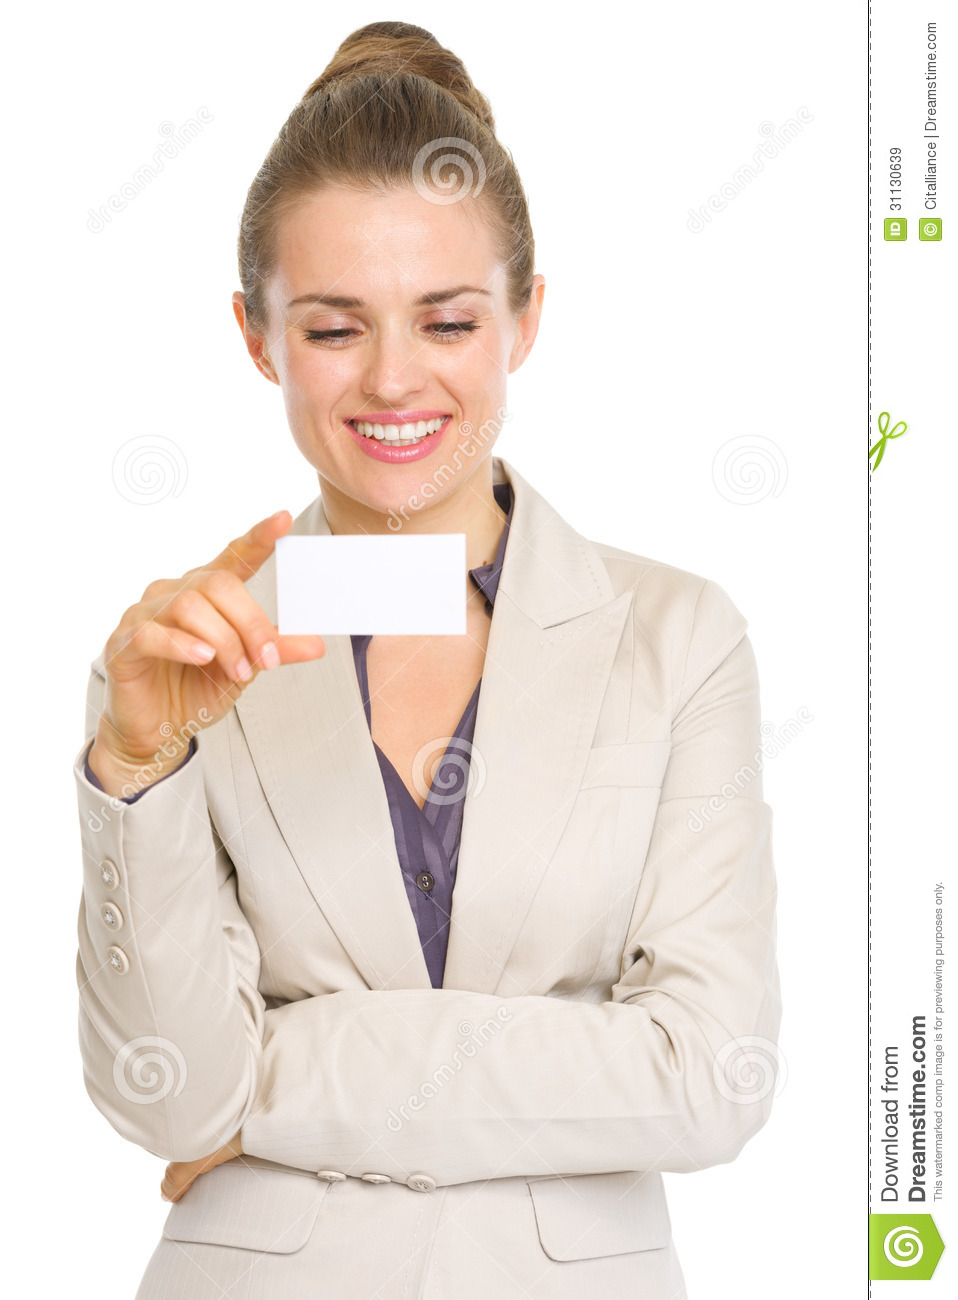 Happy Business Woman Reading Business Card Stock Image - Image of ...